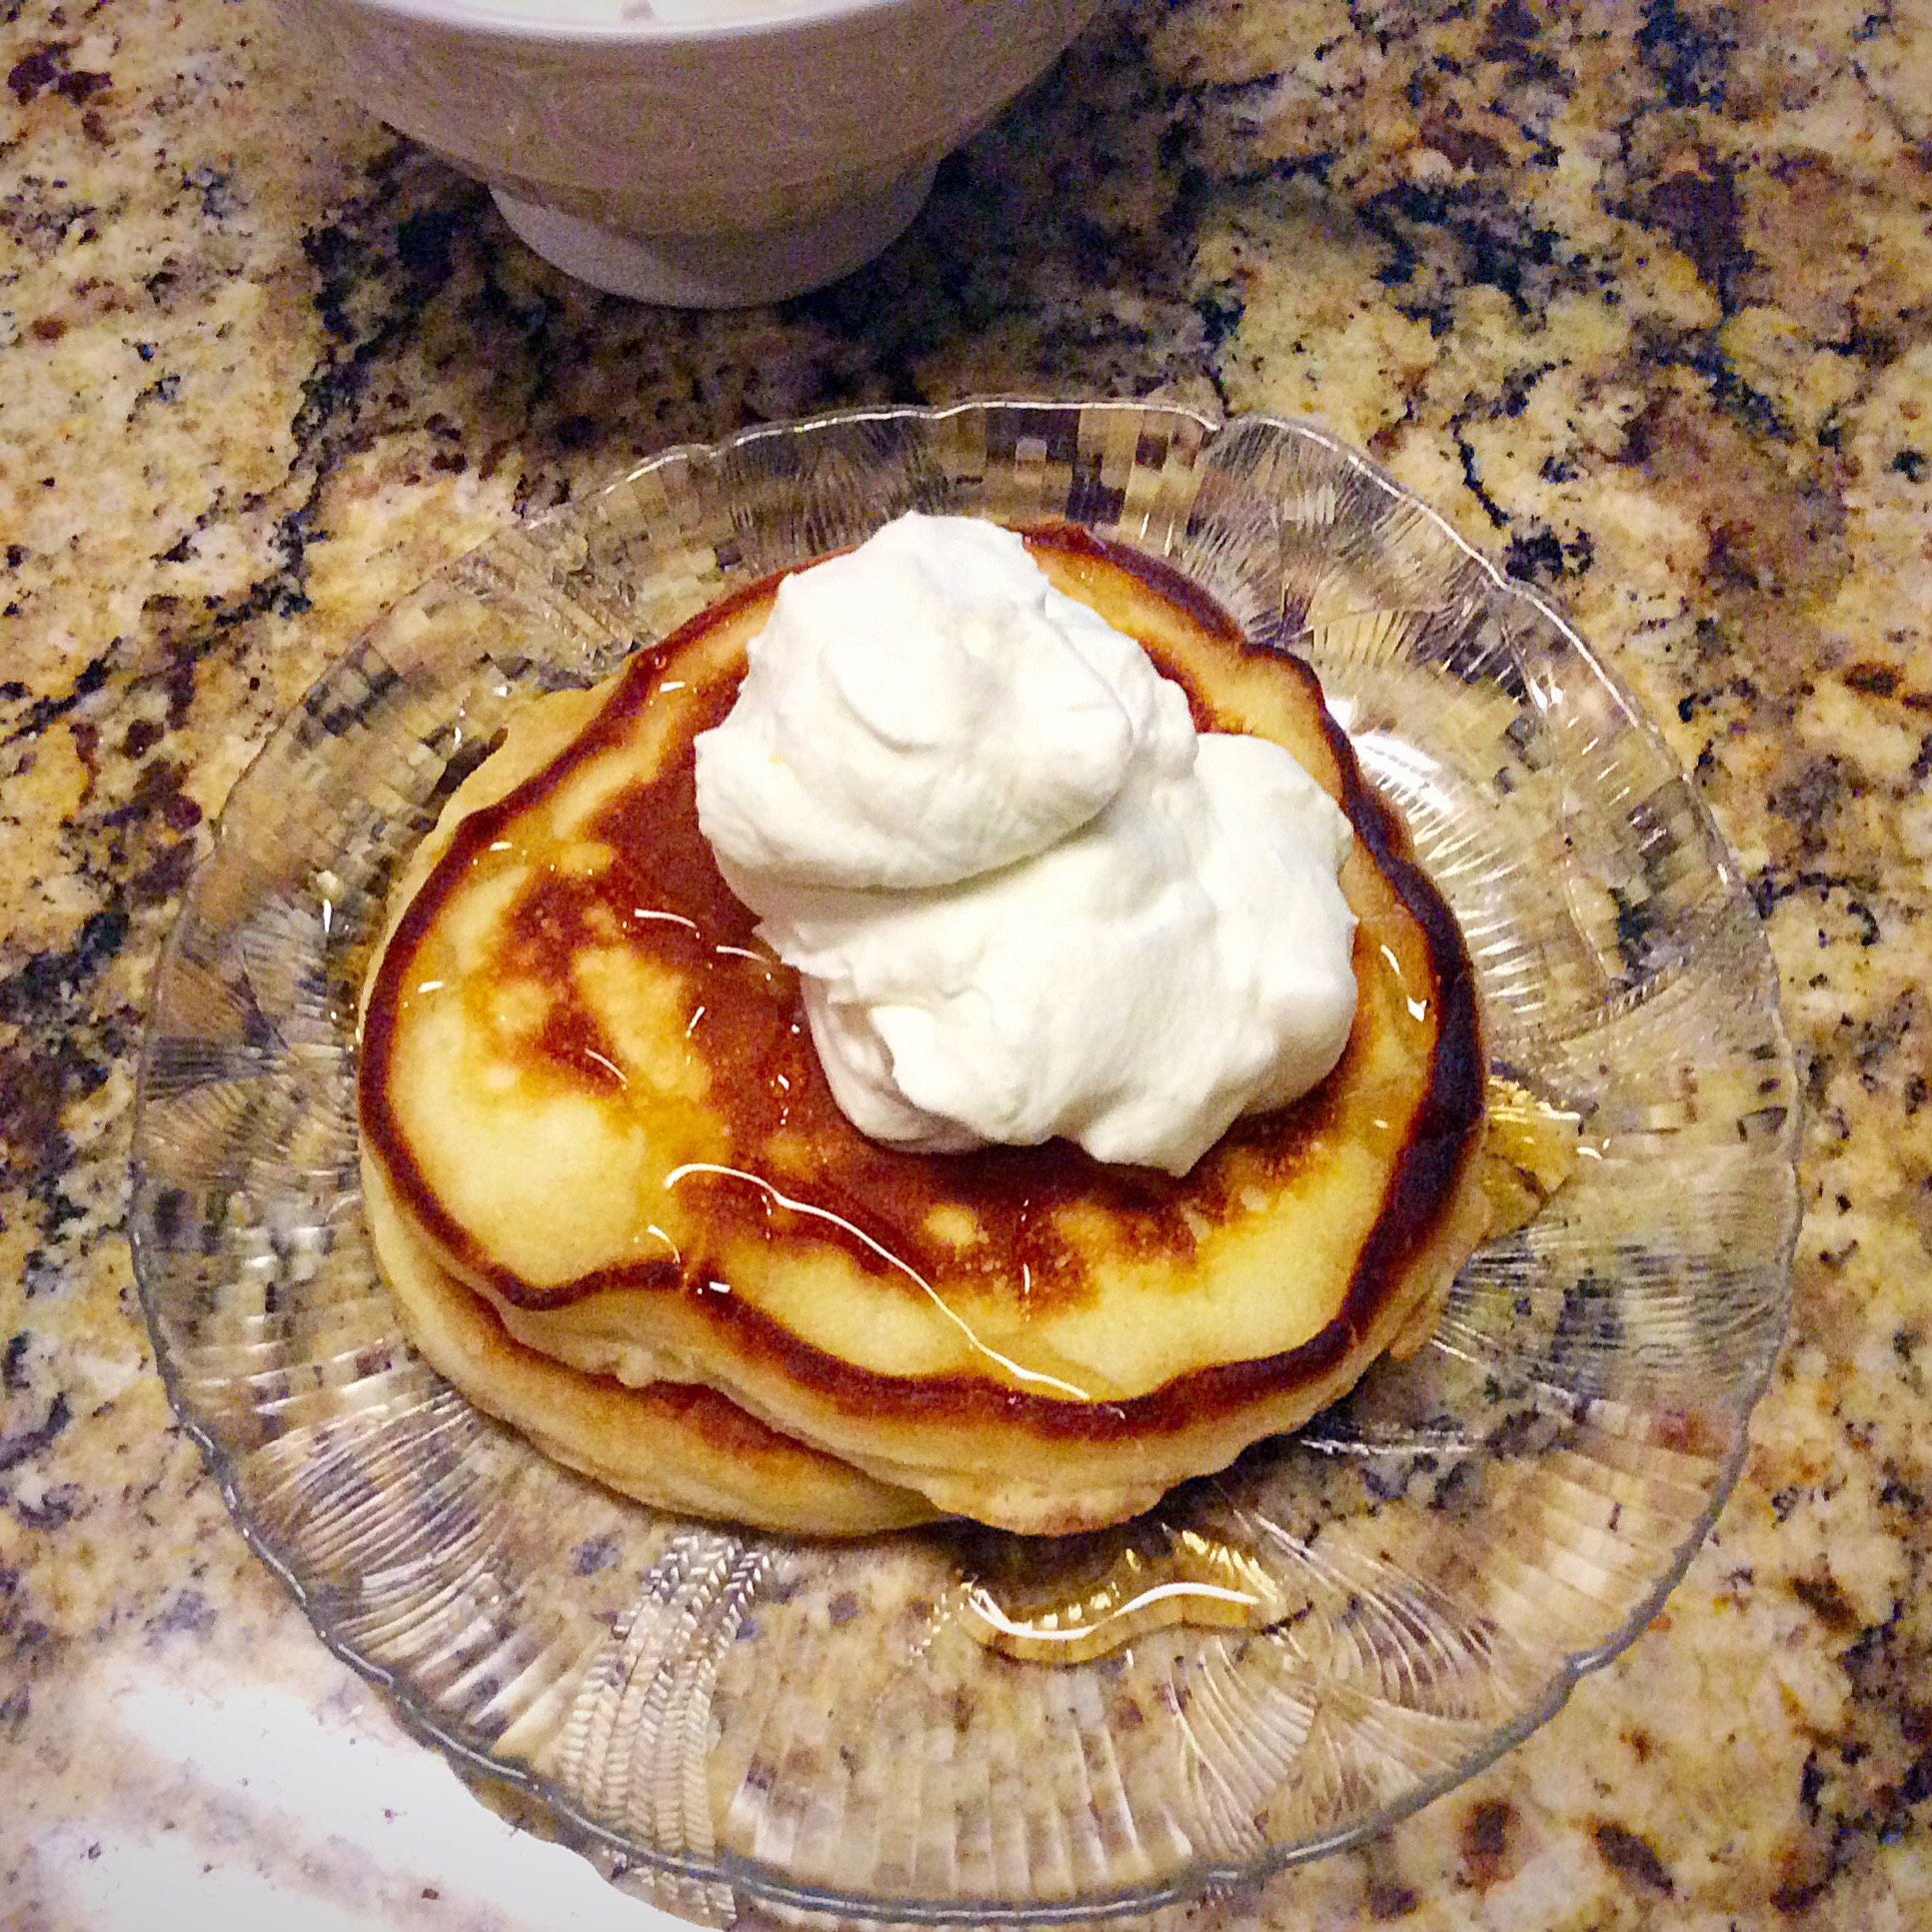 Fluffy pancakes with whipped cream yield 4 pancakes prep time 10 minutes ccuart Choice Image